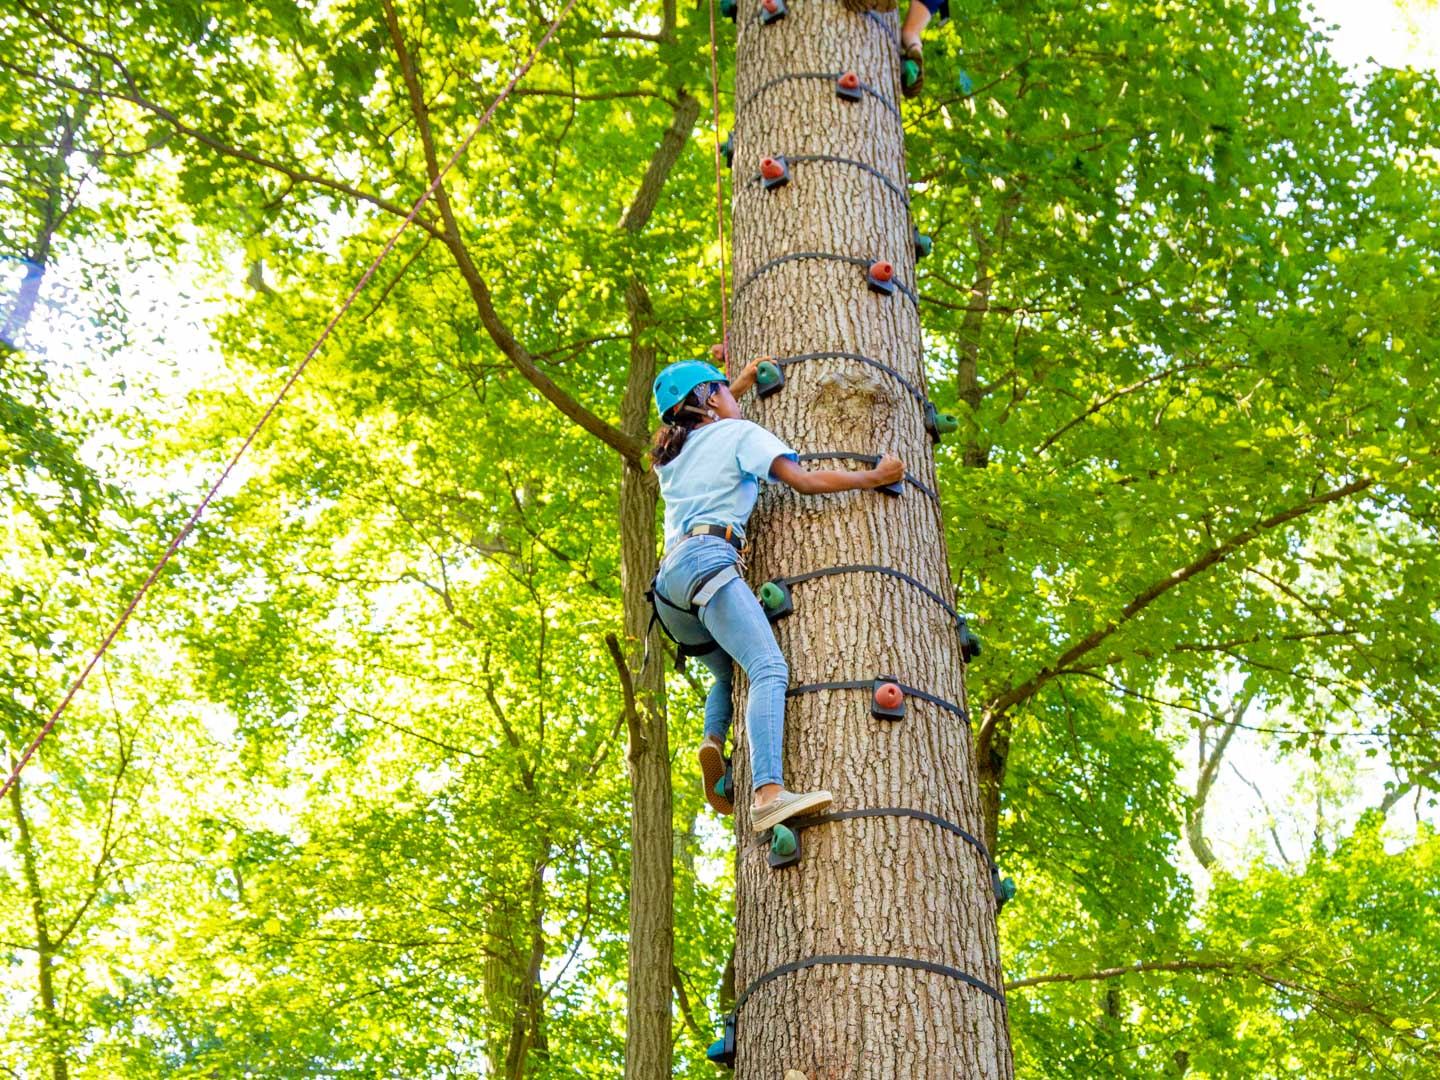 Camper climbing the climbing tree